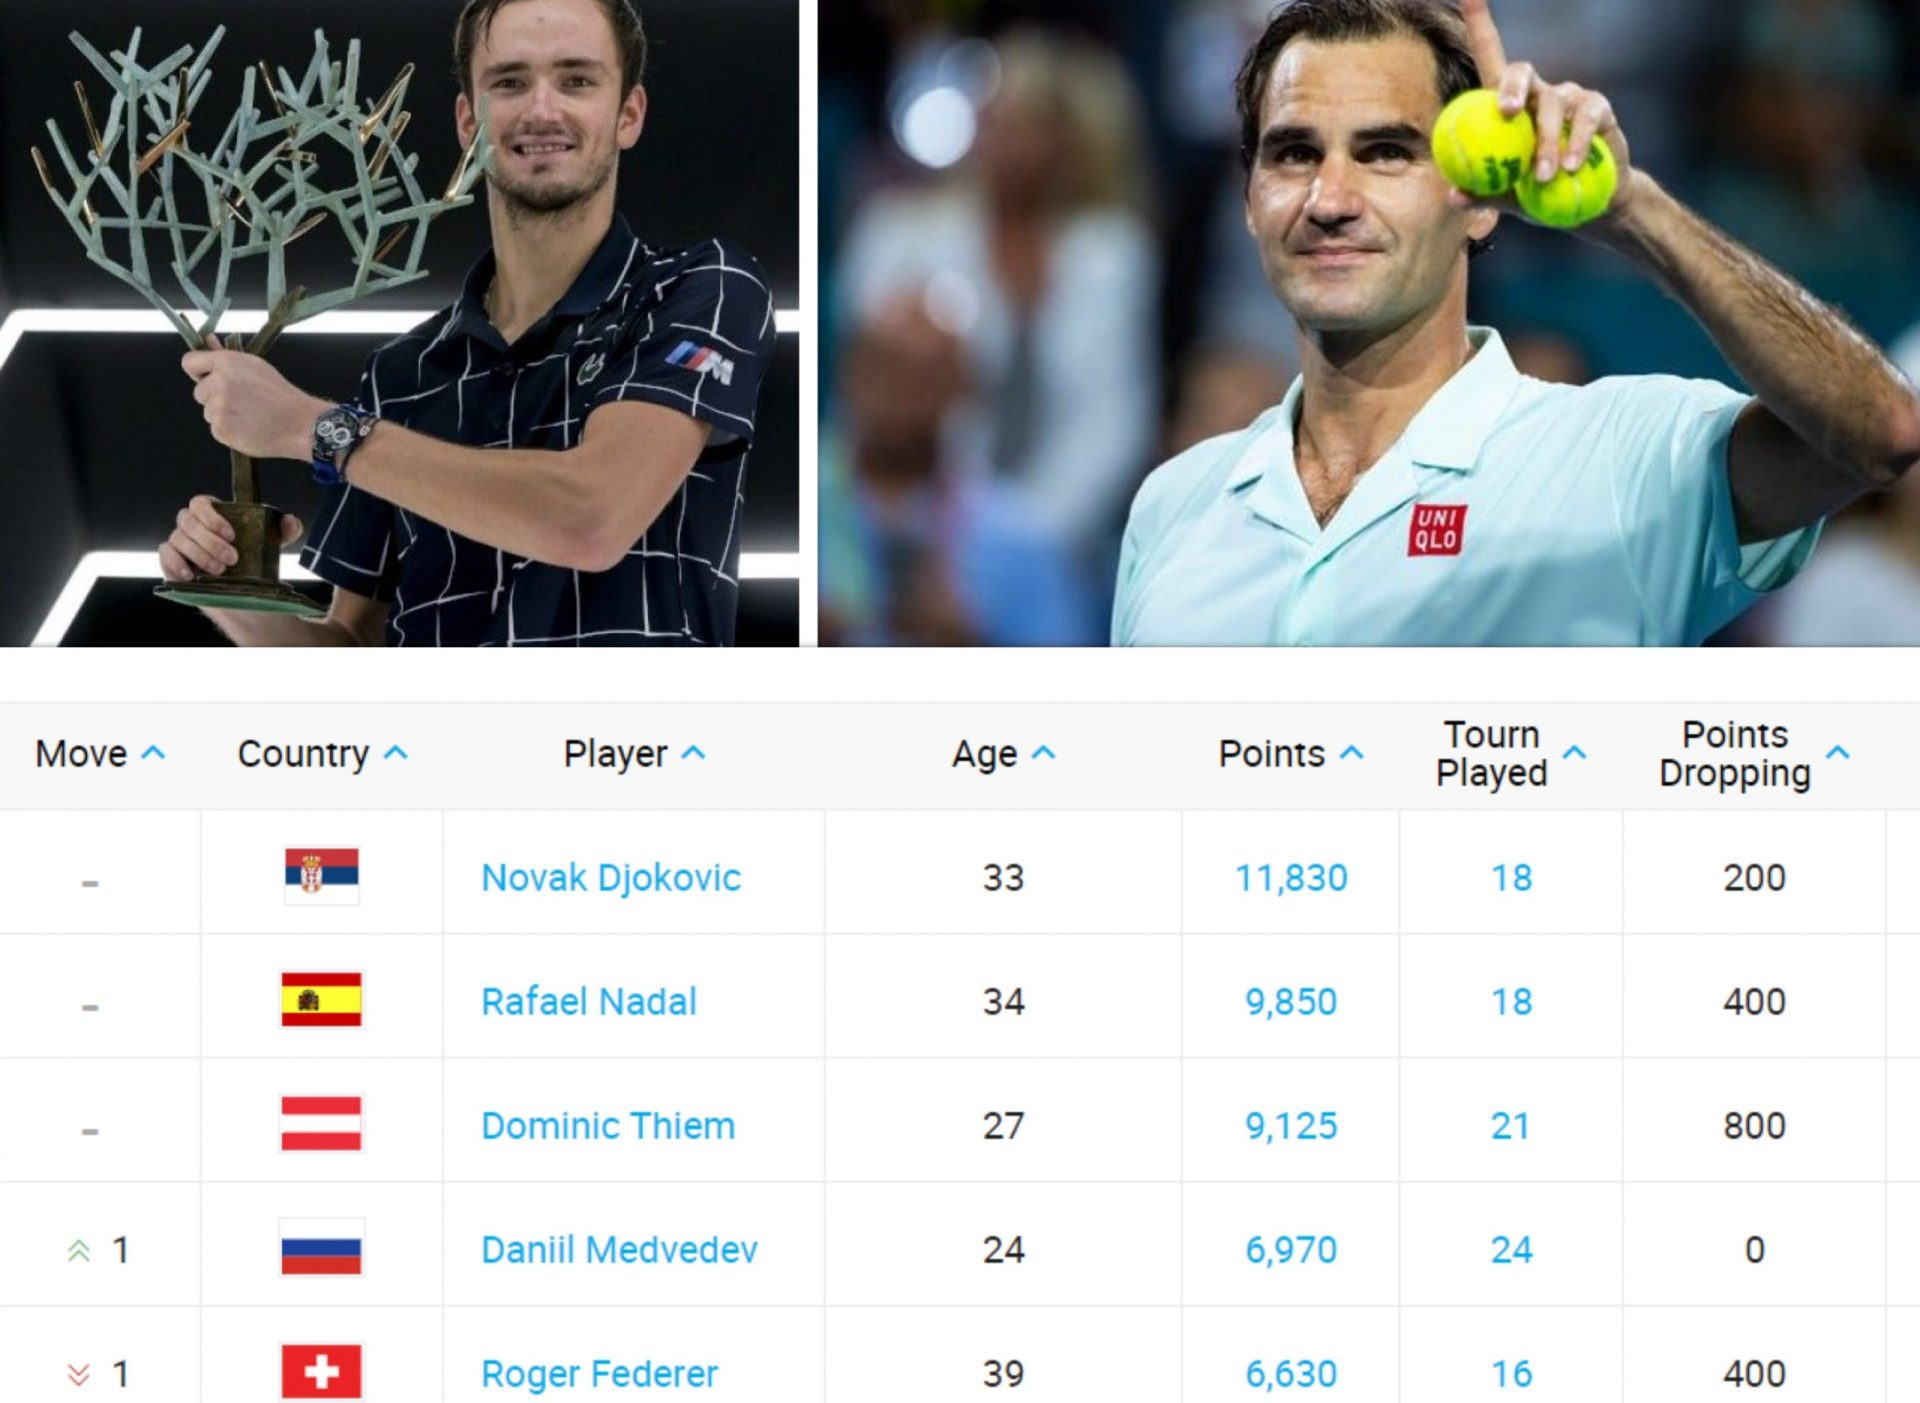 The win and the rise-Daniil Medvedev overtakes Federer in ATP rankings - THE SPORTS ROOM